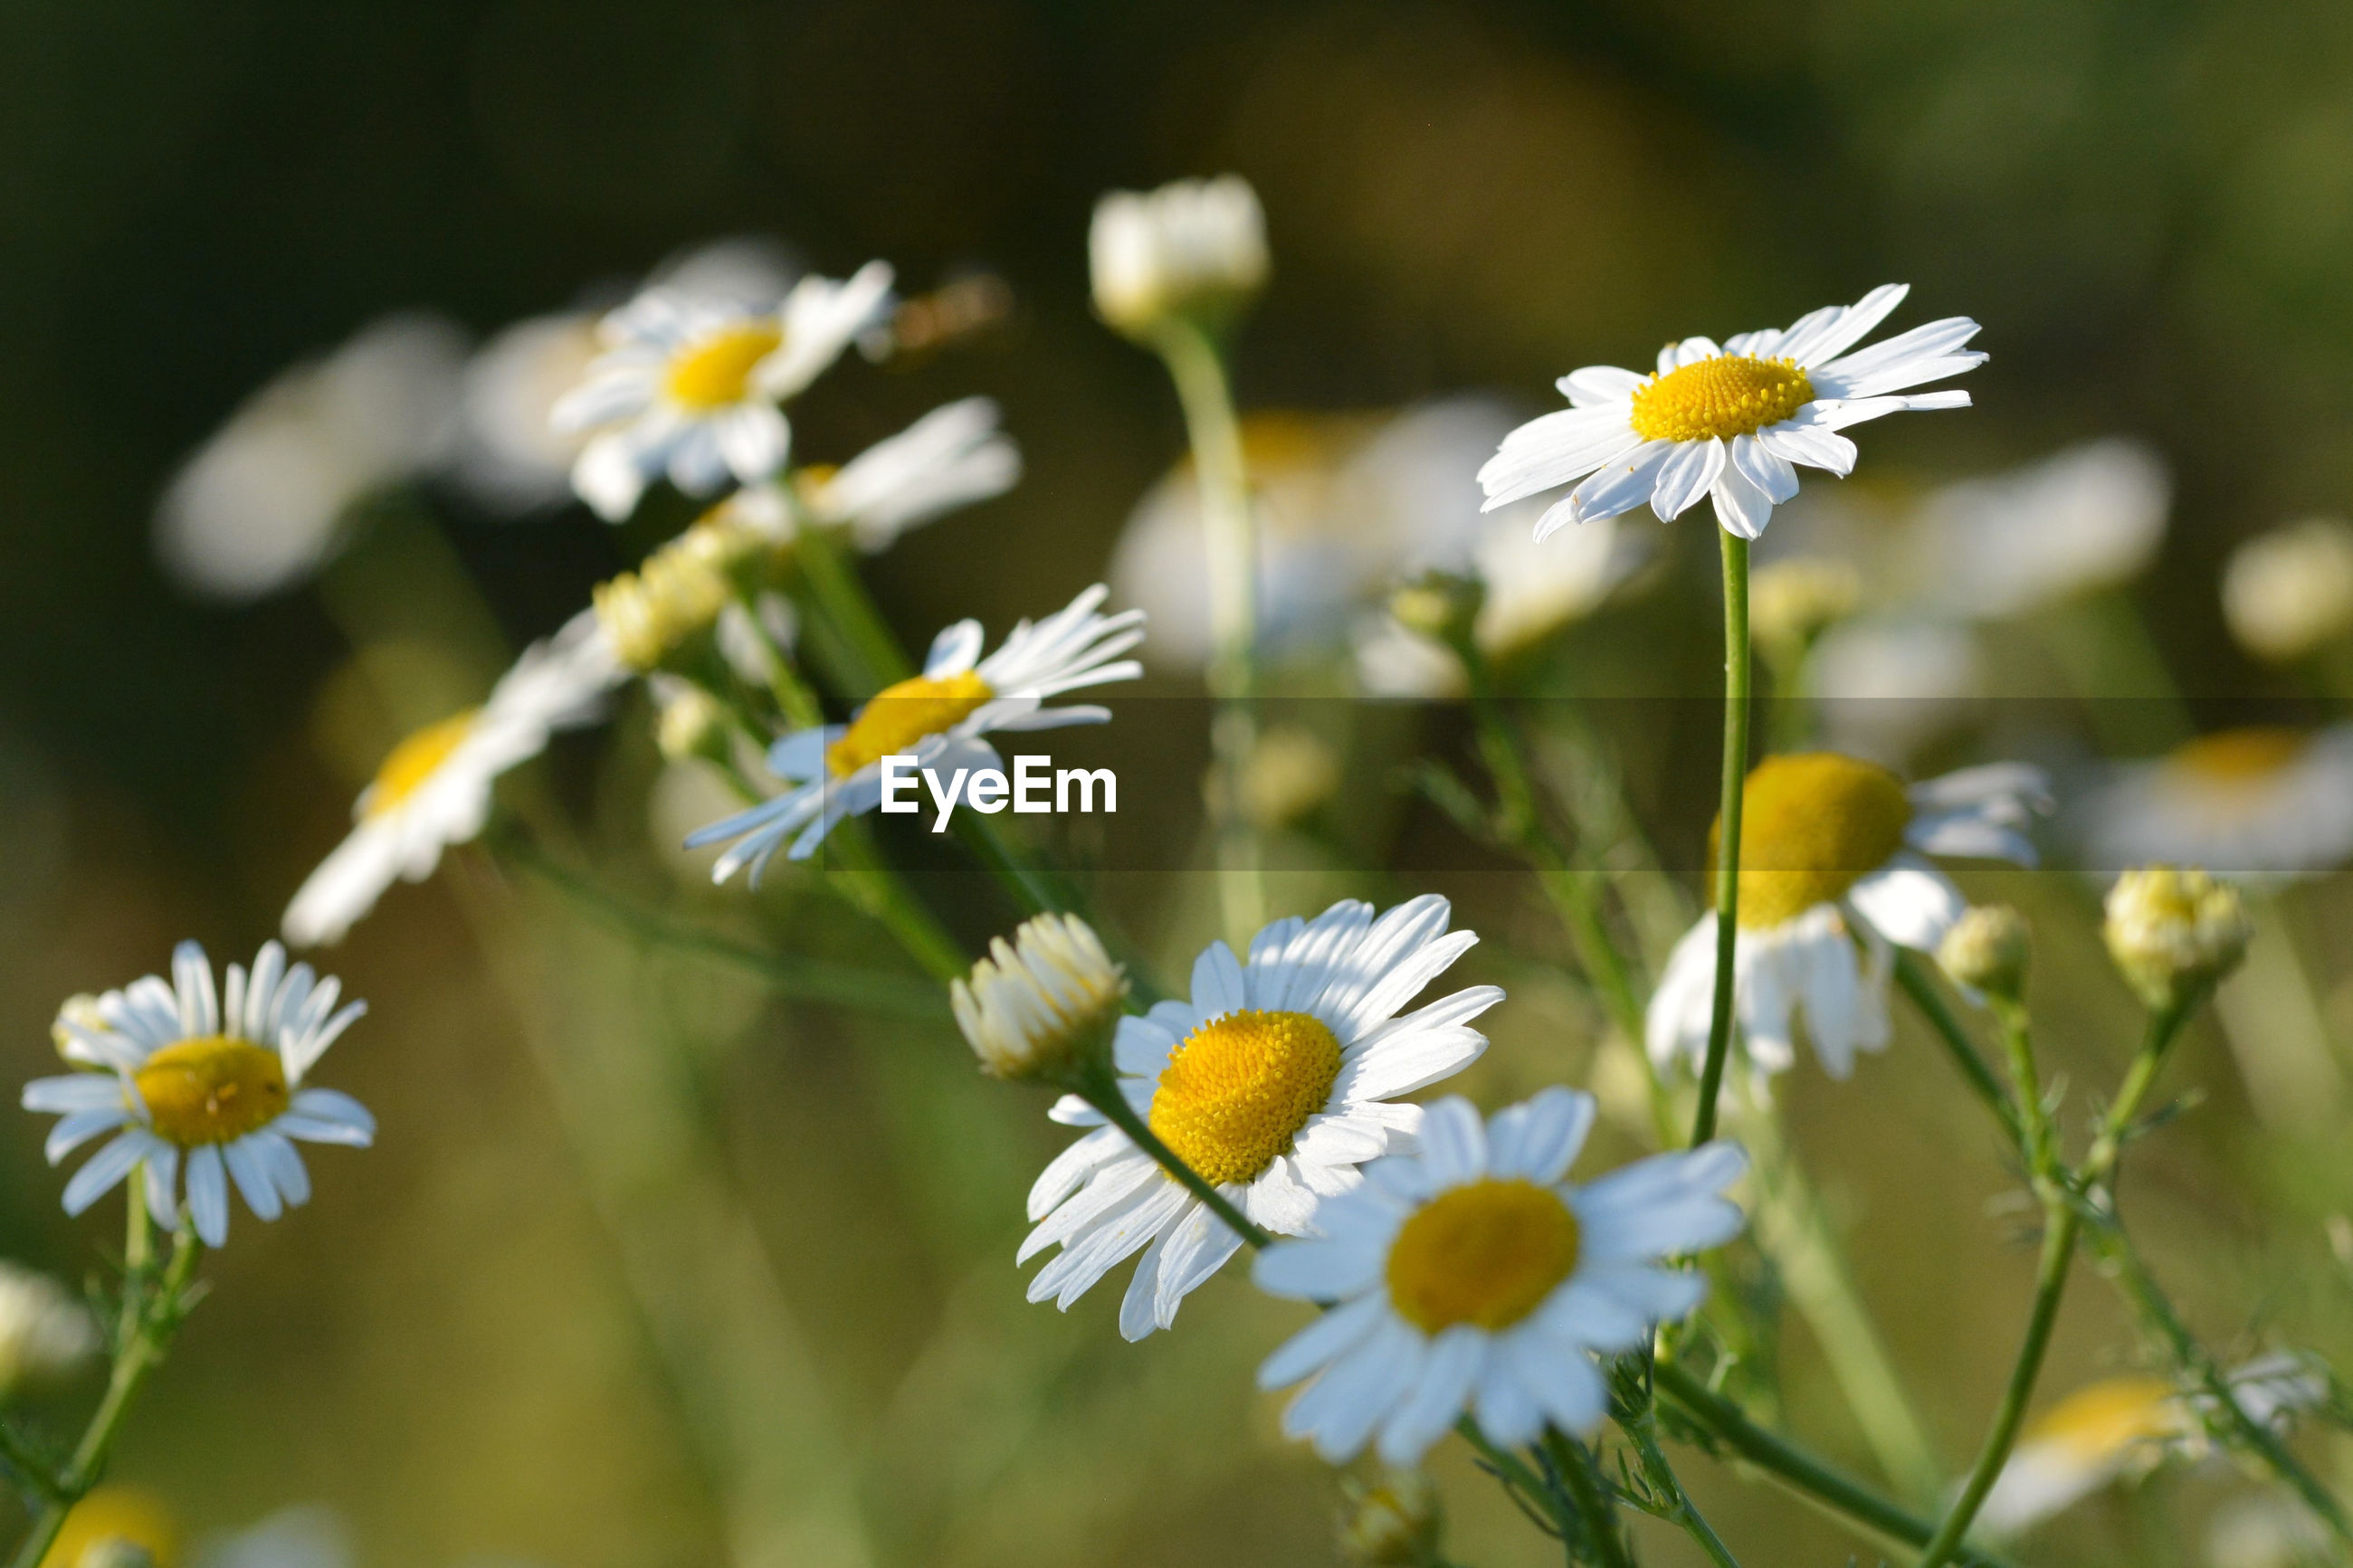 CLOSE-UP OF DAISY FLOWERS